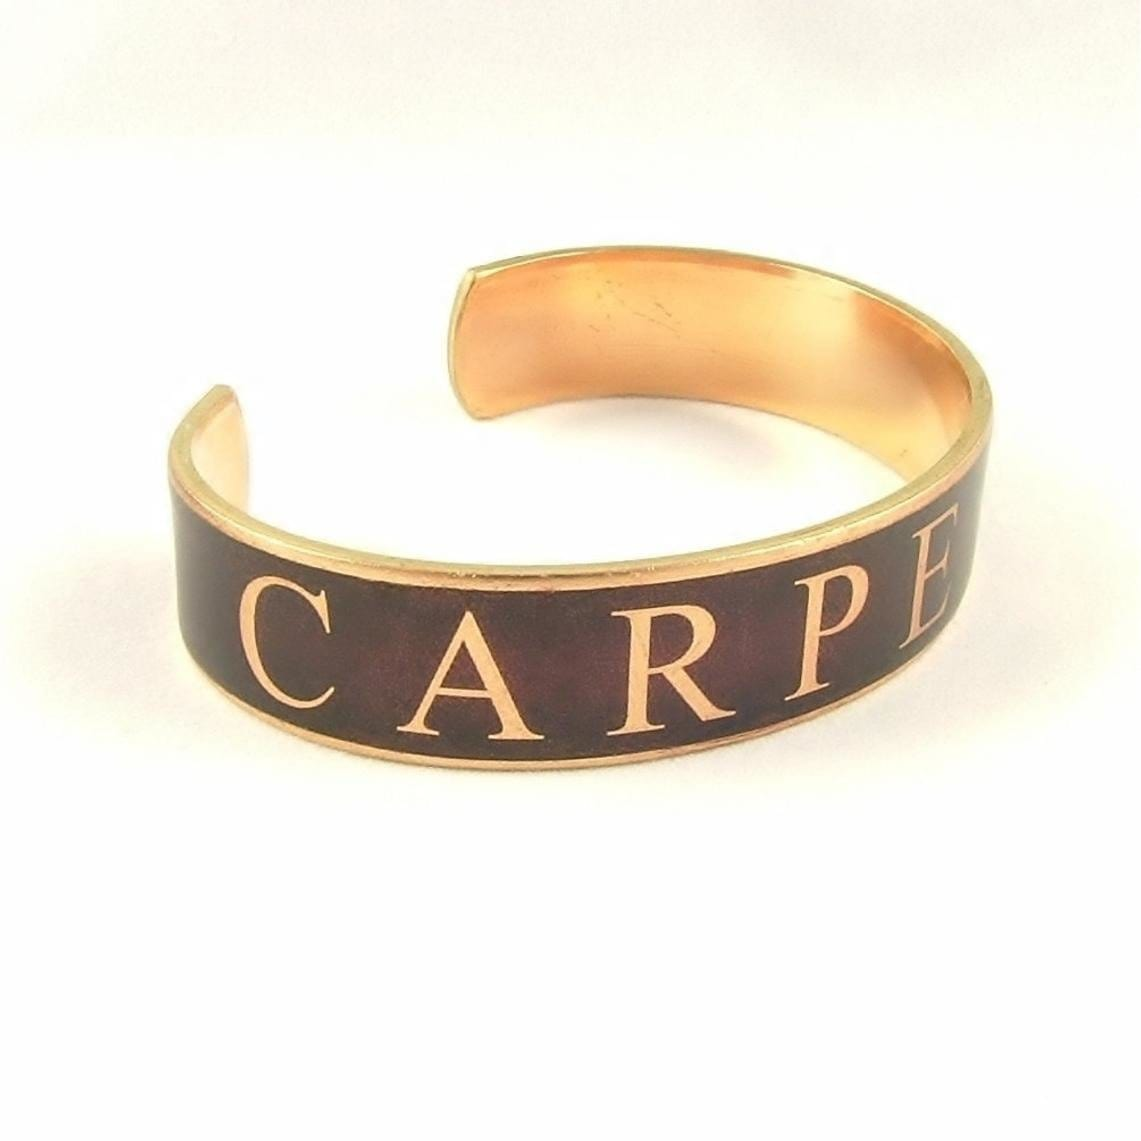 Carpe Diem Cuff BookGeek